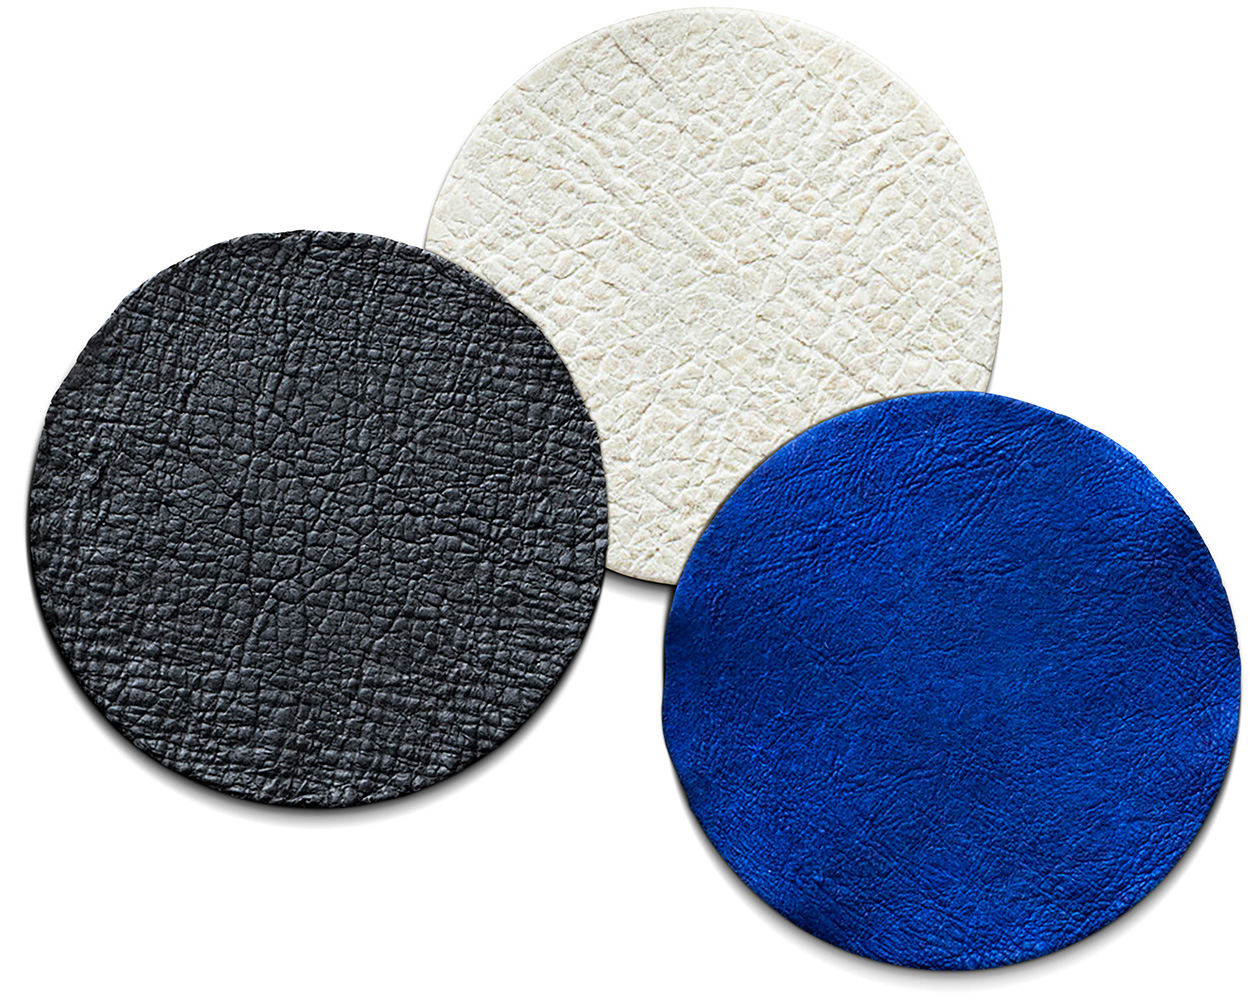 Zoa™ bioleather materials from Modern Meadow. - zoa.is